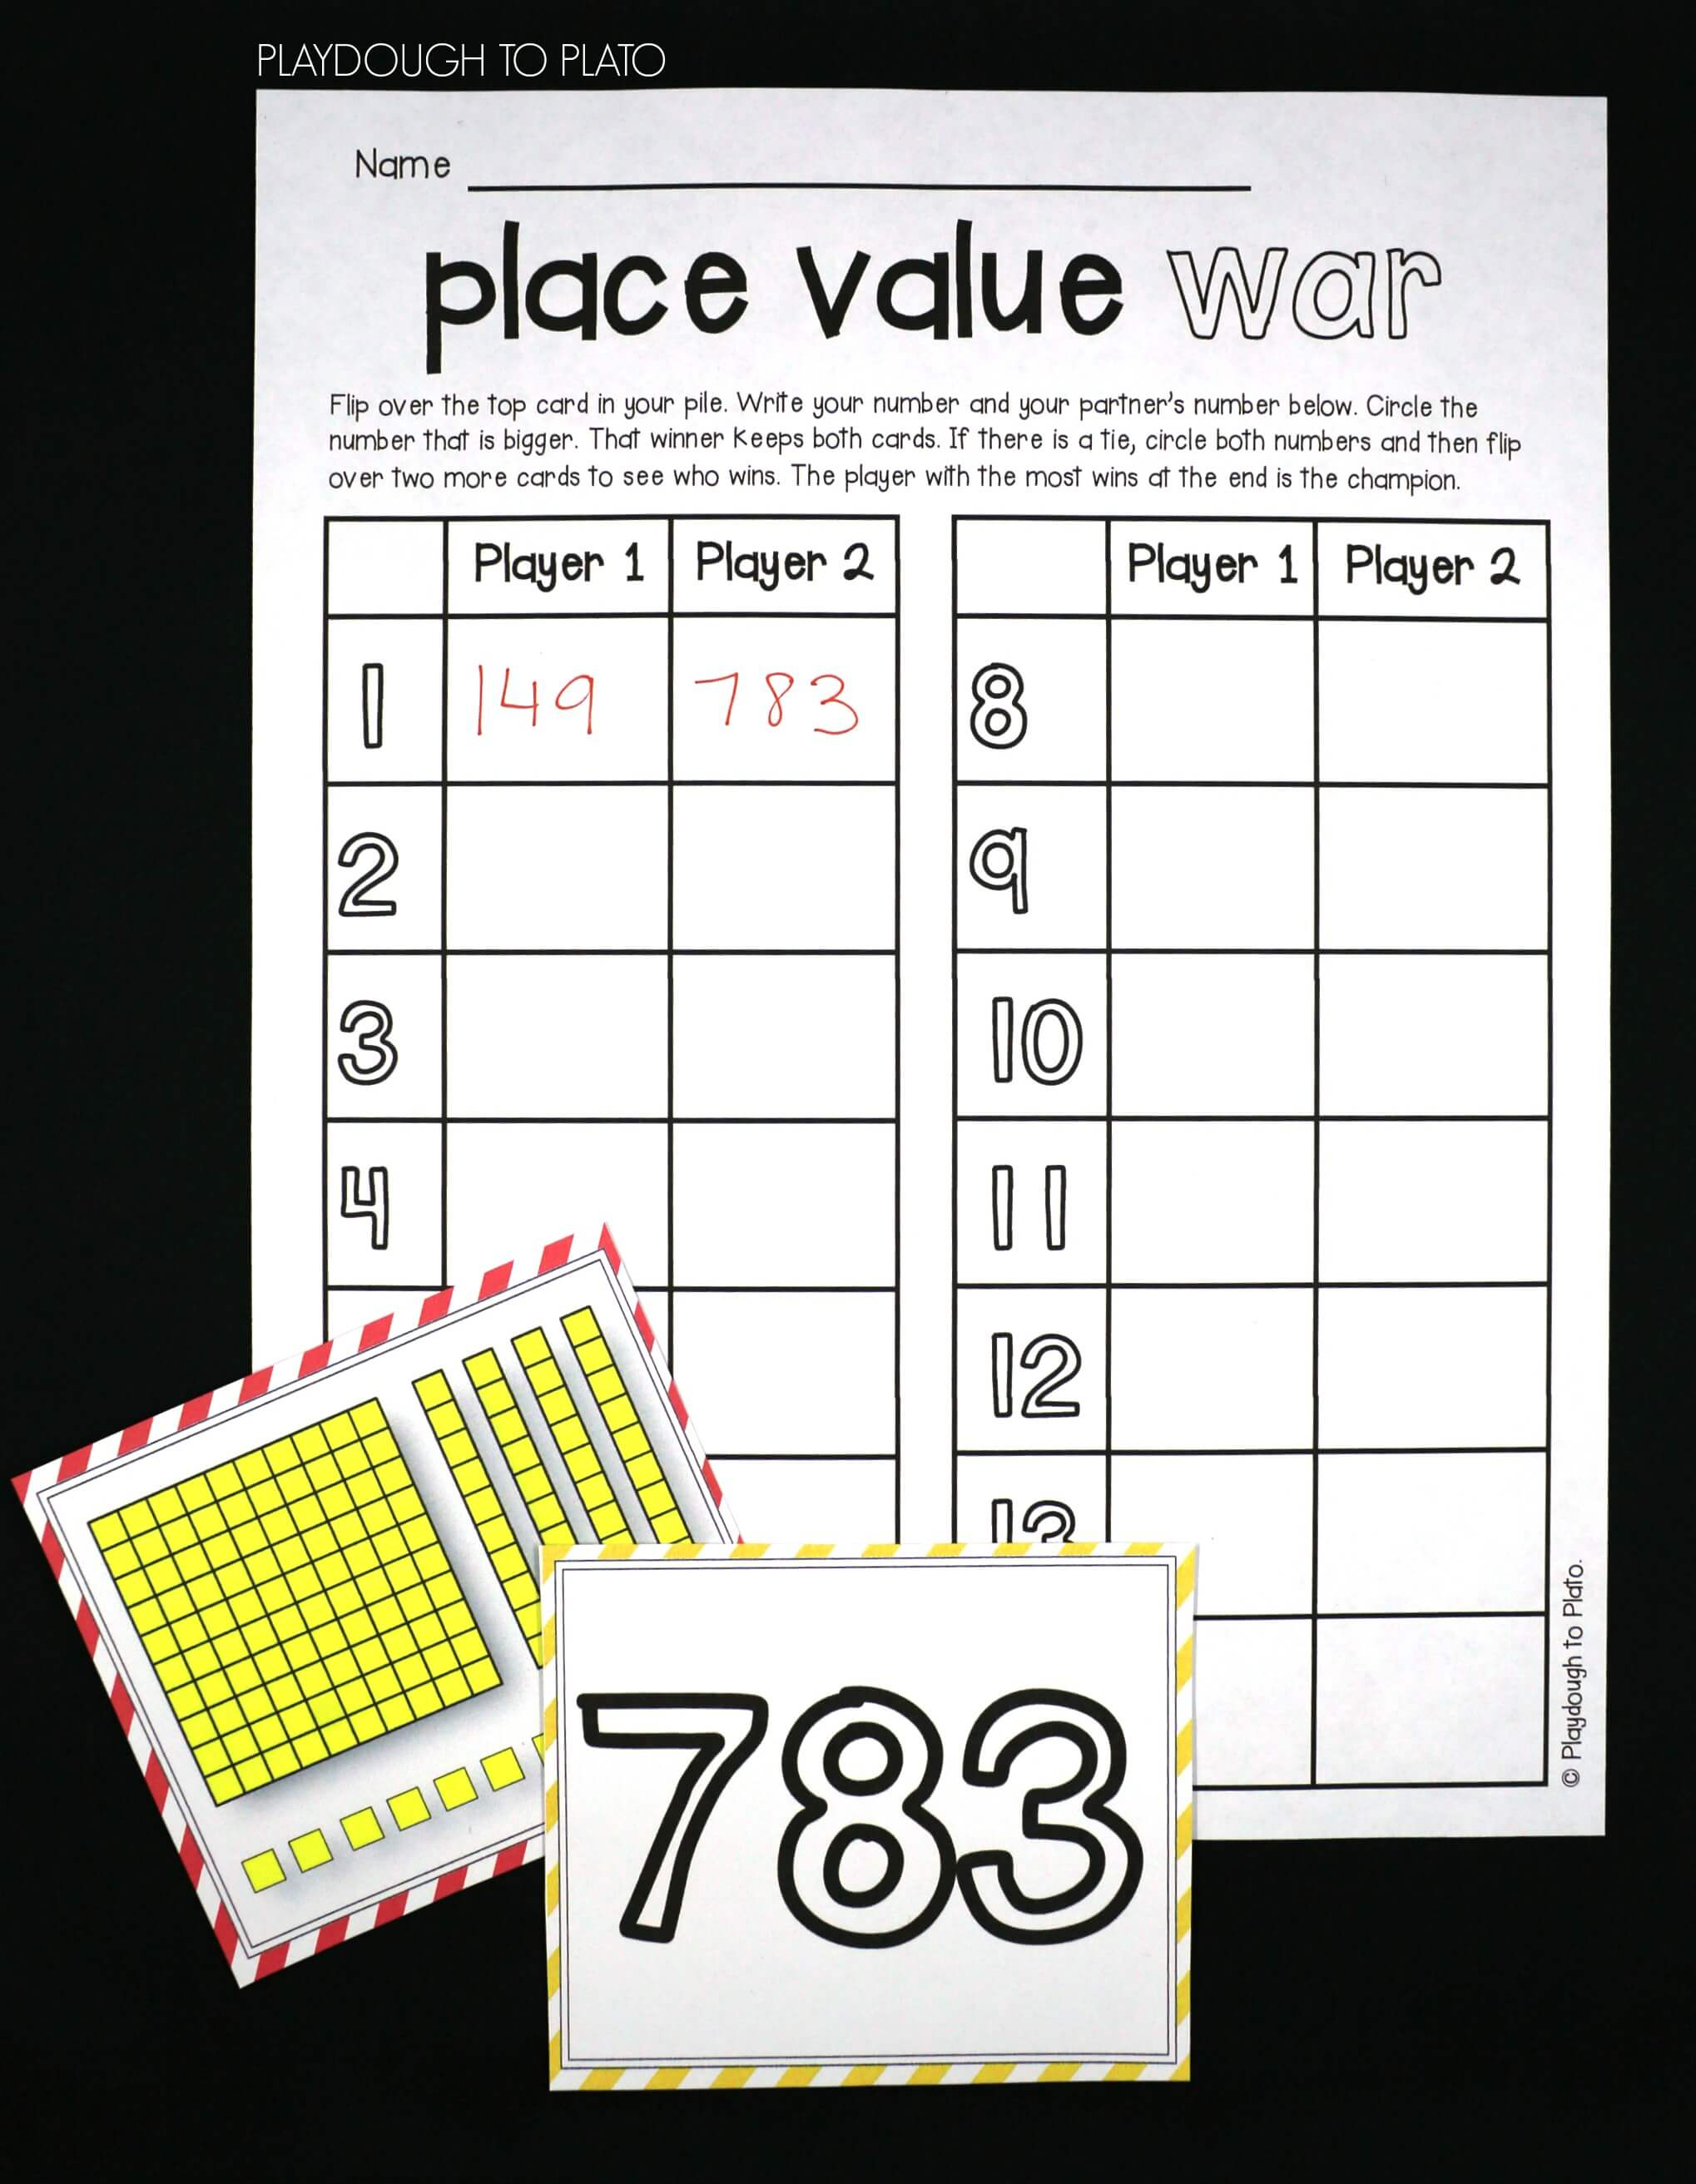 picture regarding Printable Place Value Game identify Space Worth War - Playdough Toward Plato